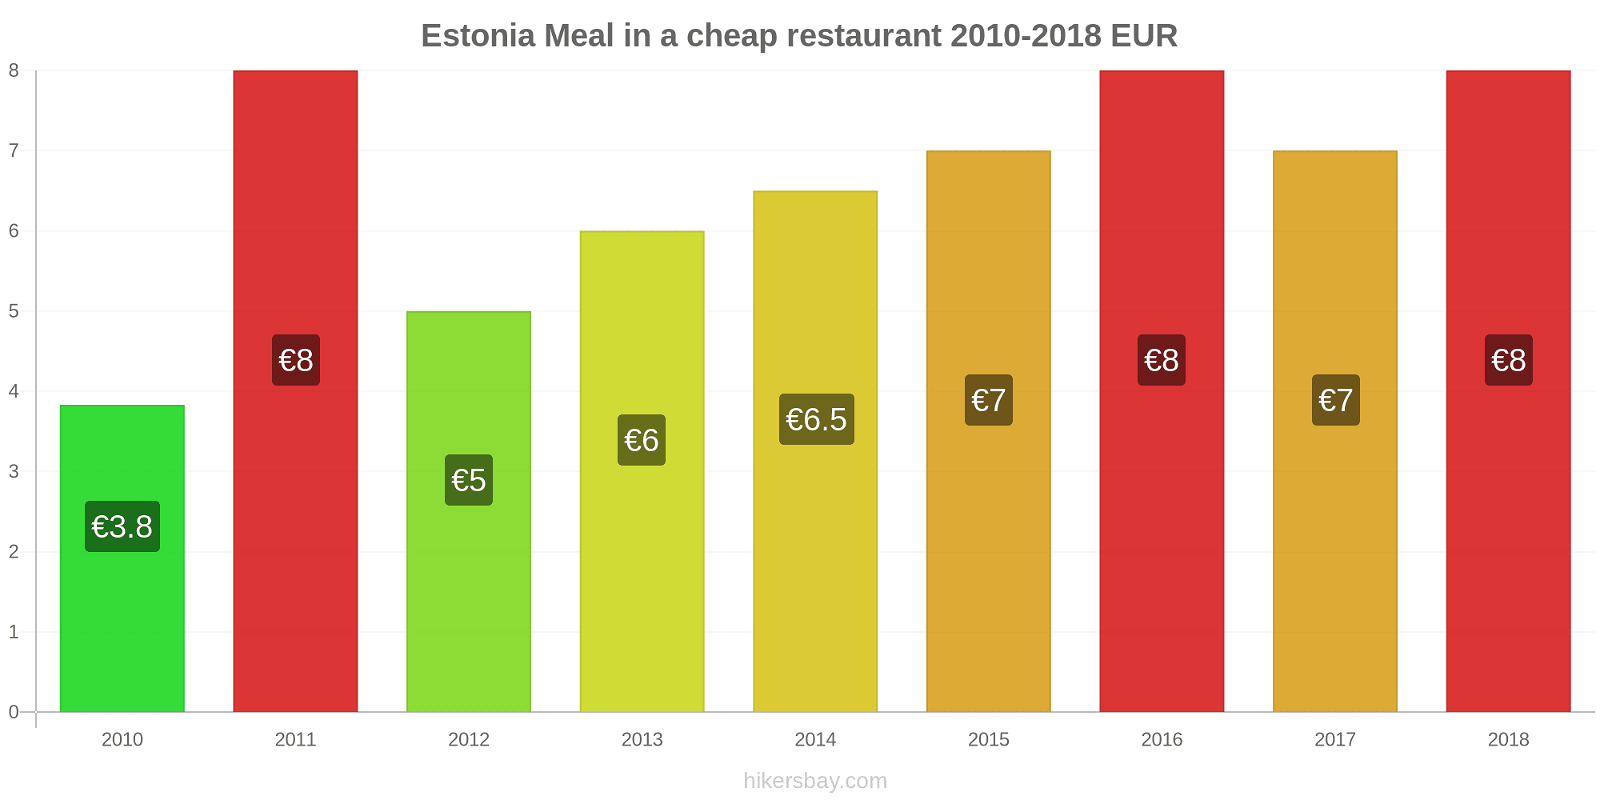 Estonia price changes Meal in a cheap restaurant hikersbay.com